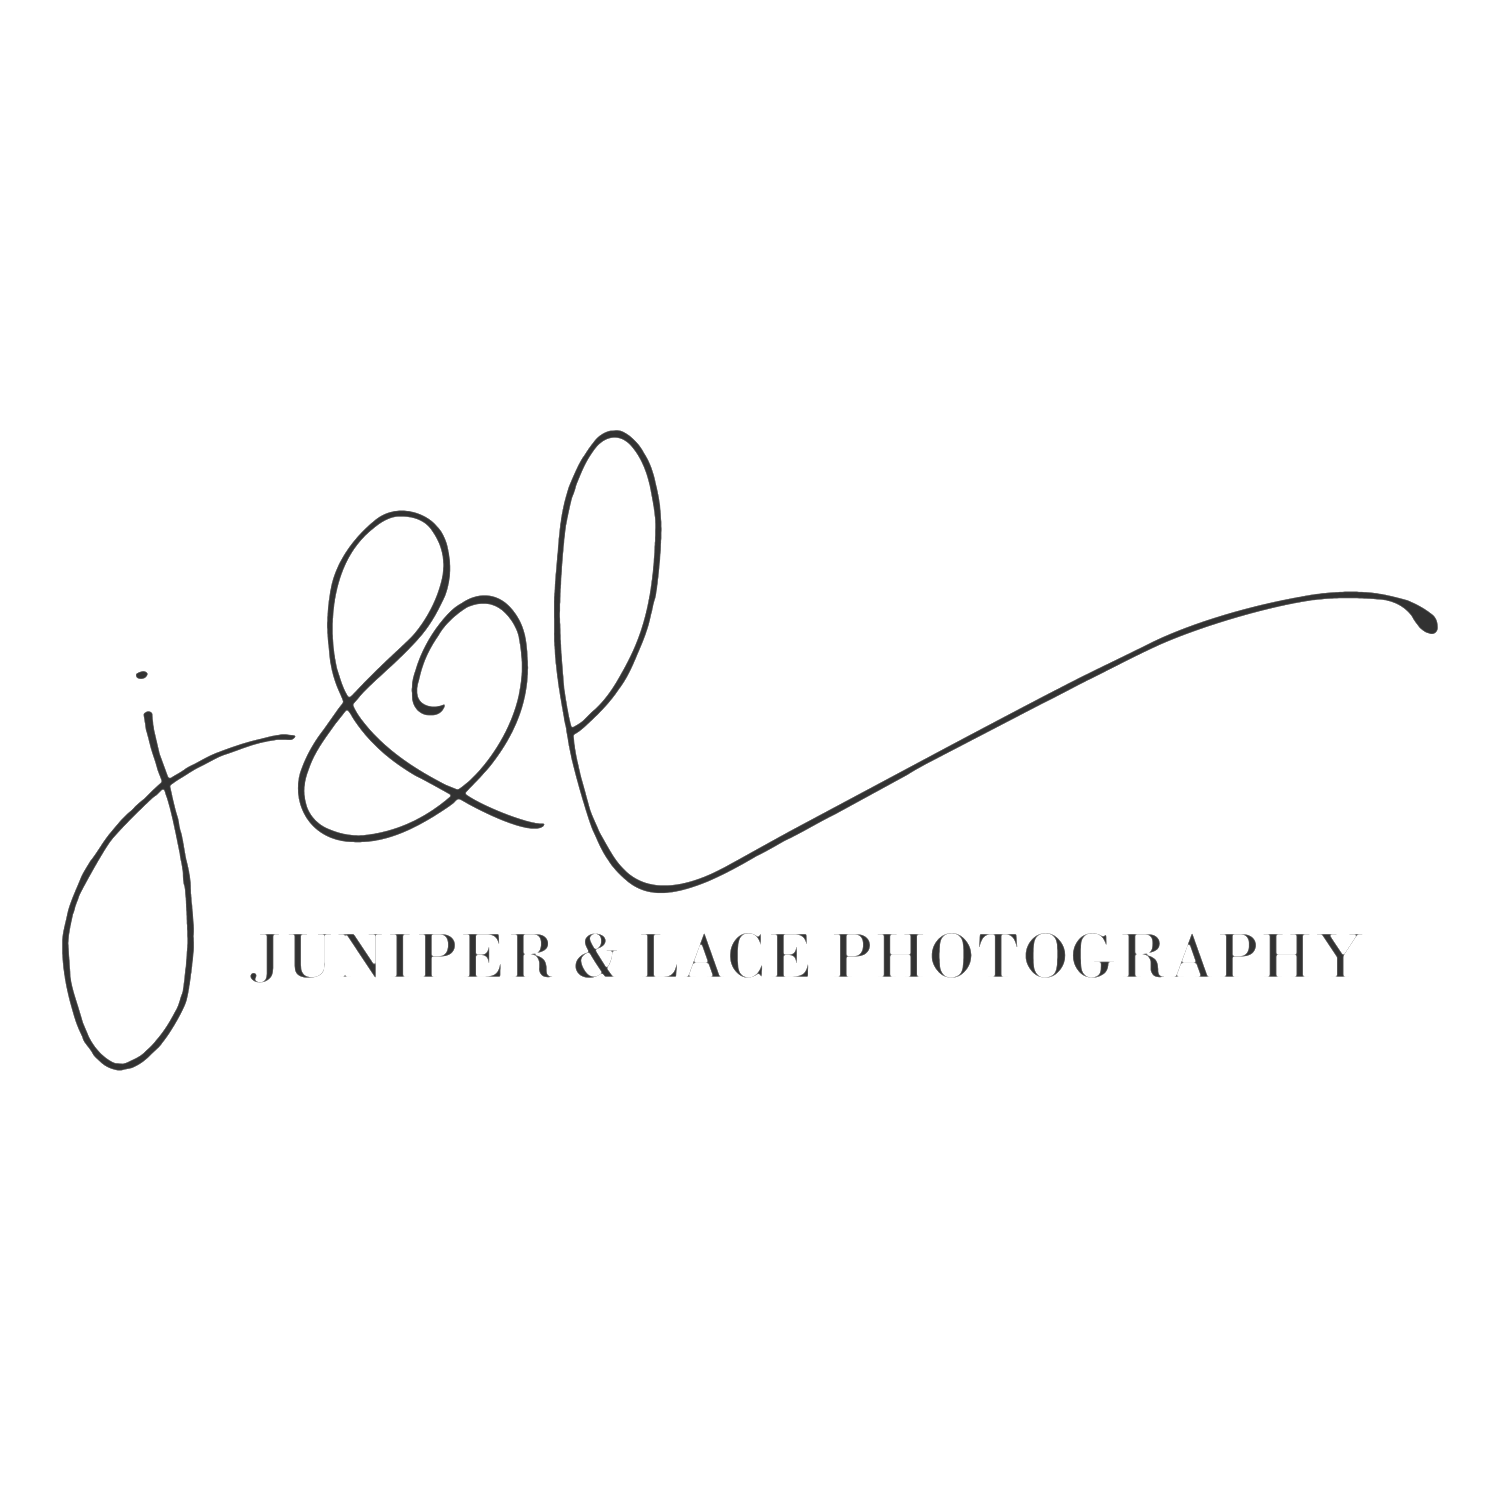 Juniper & Lace Photography